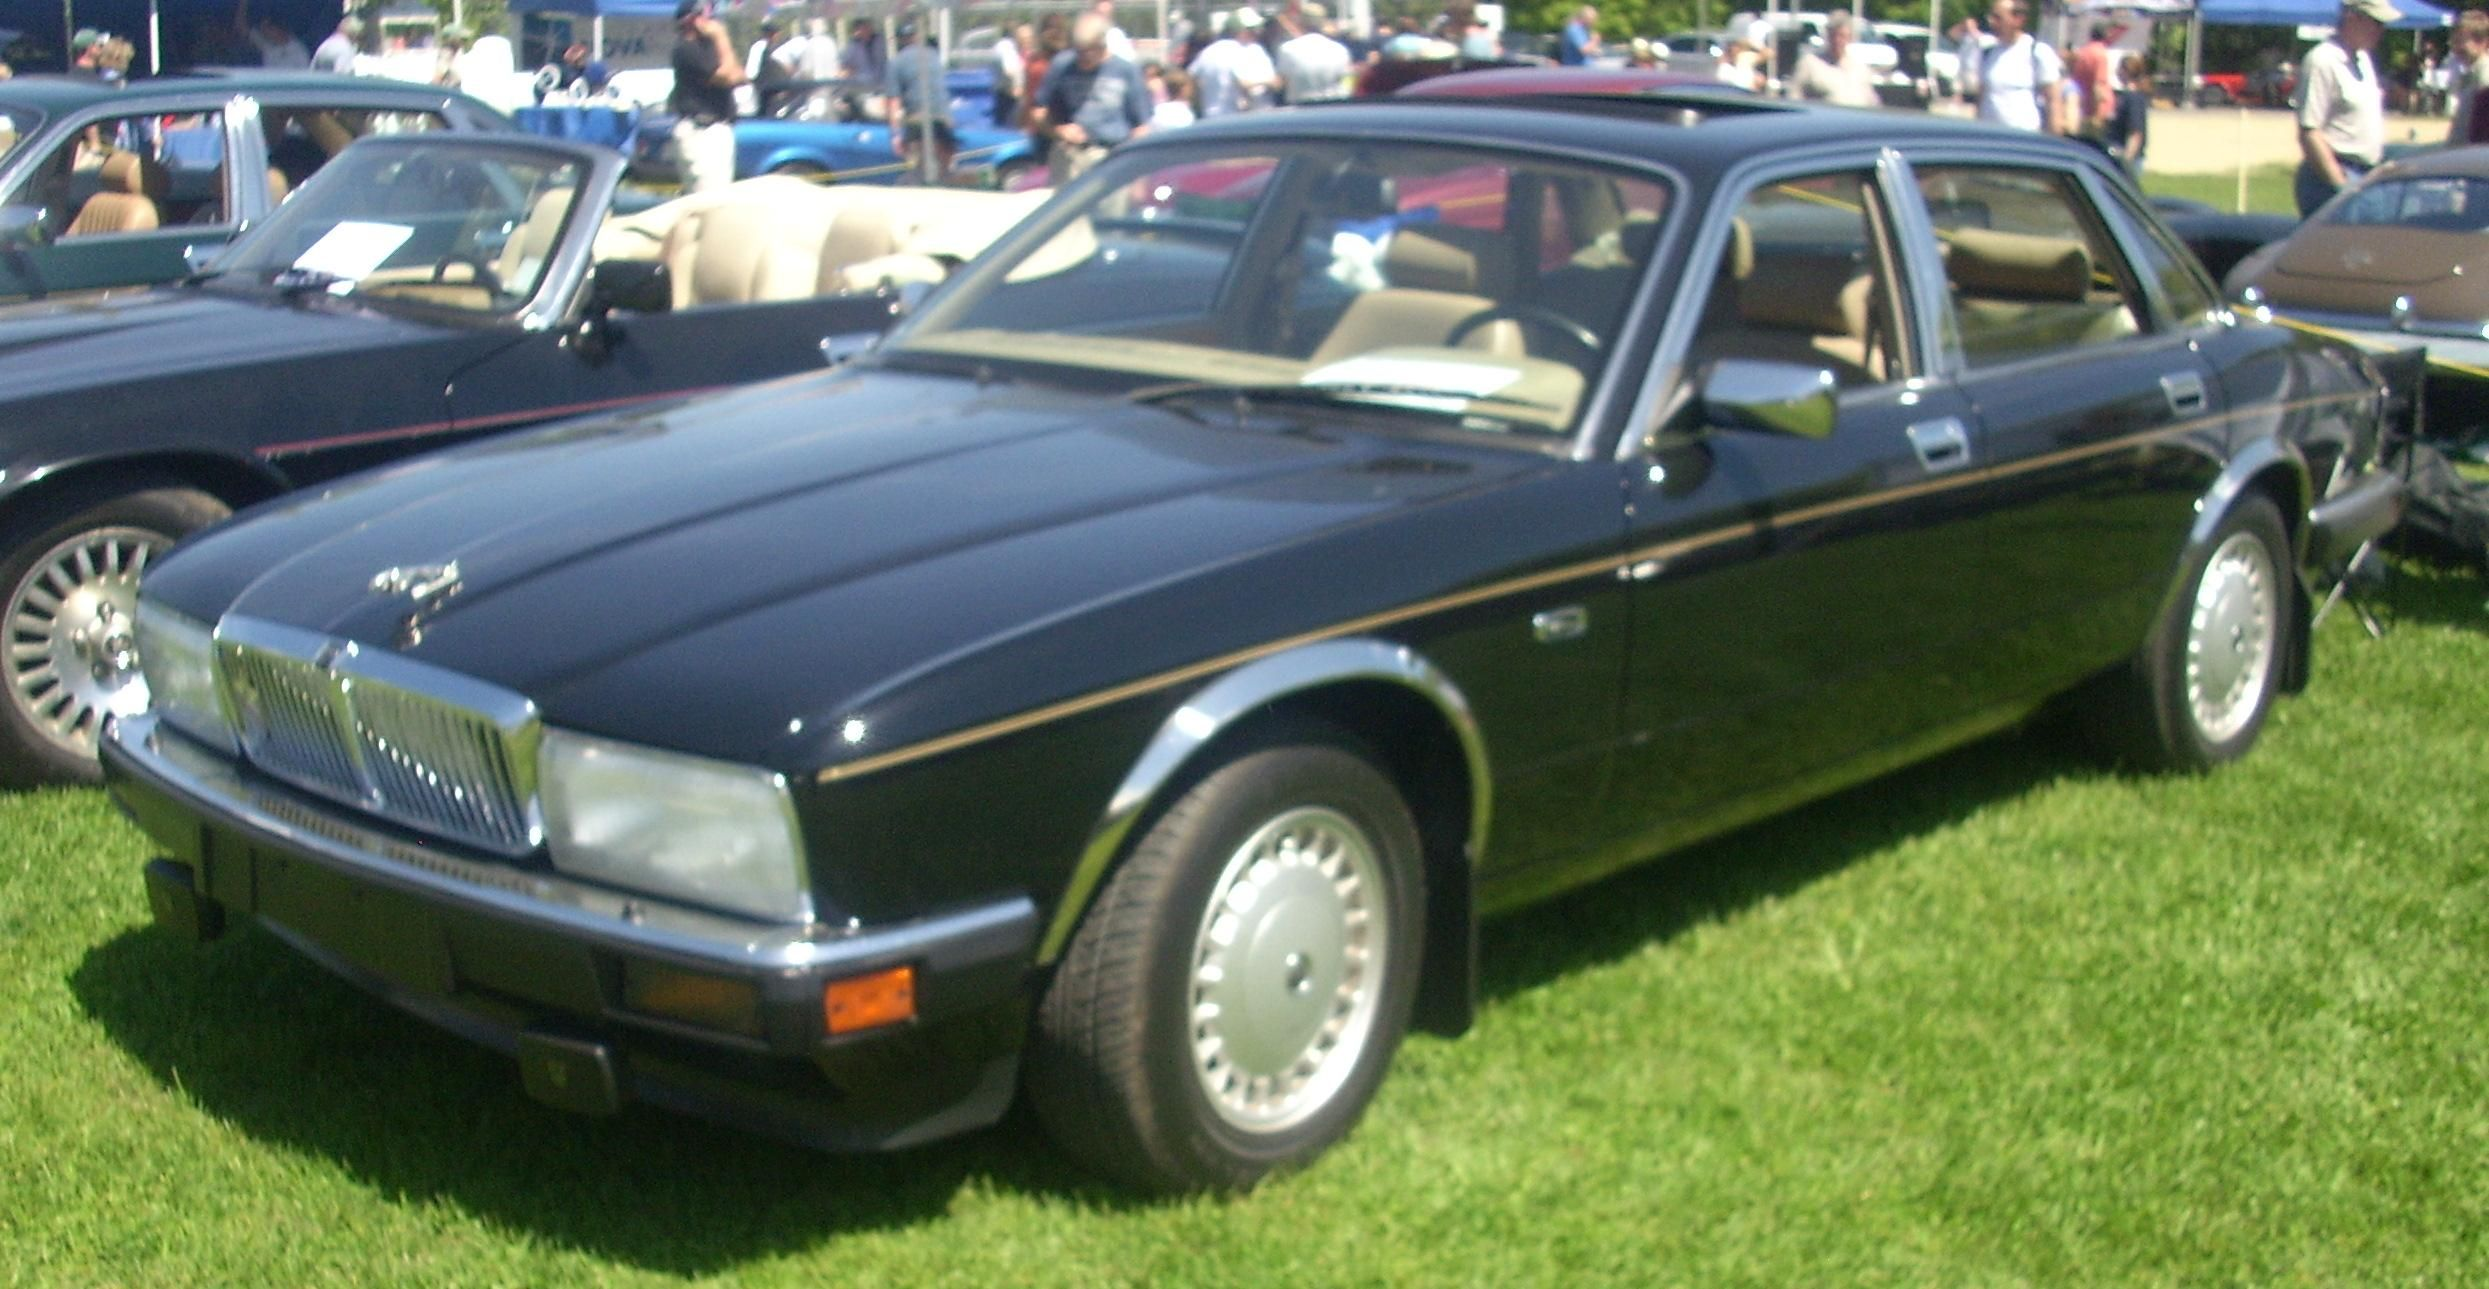 4 Jaguar Xj40 Probably One Of The Worst Jaguars In Living Memory